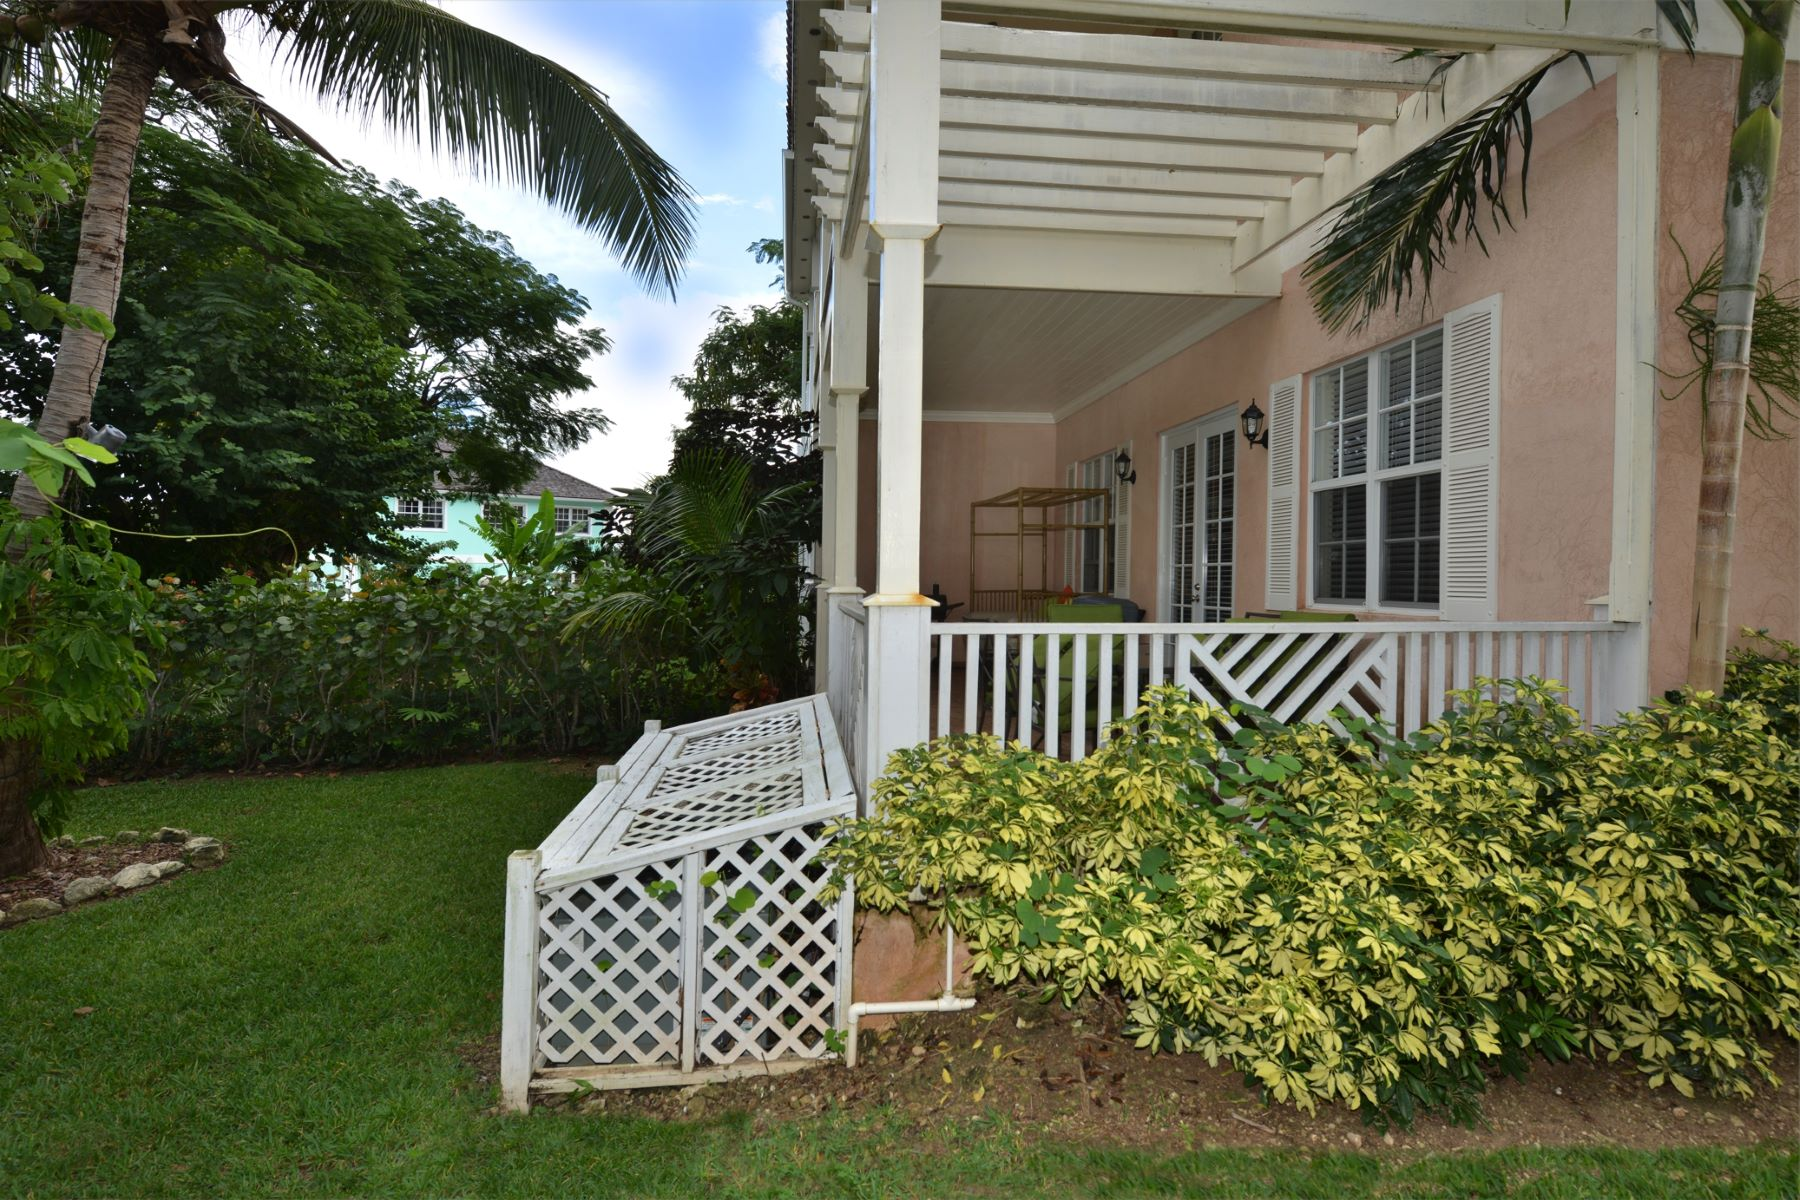 Additional photo for property listing at Balmoral #GR79 Balmoral, Prospect Ridge, Nassau And Paradise Island Bahamas